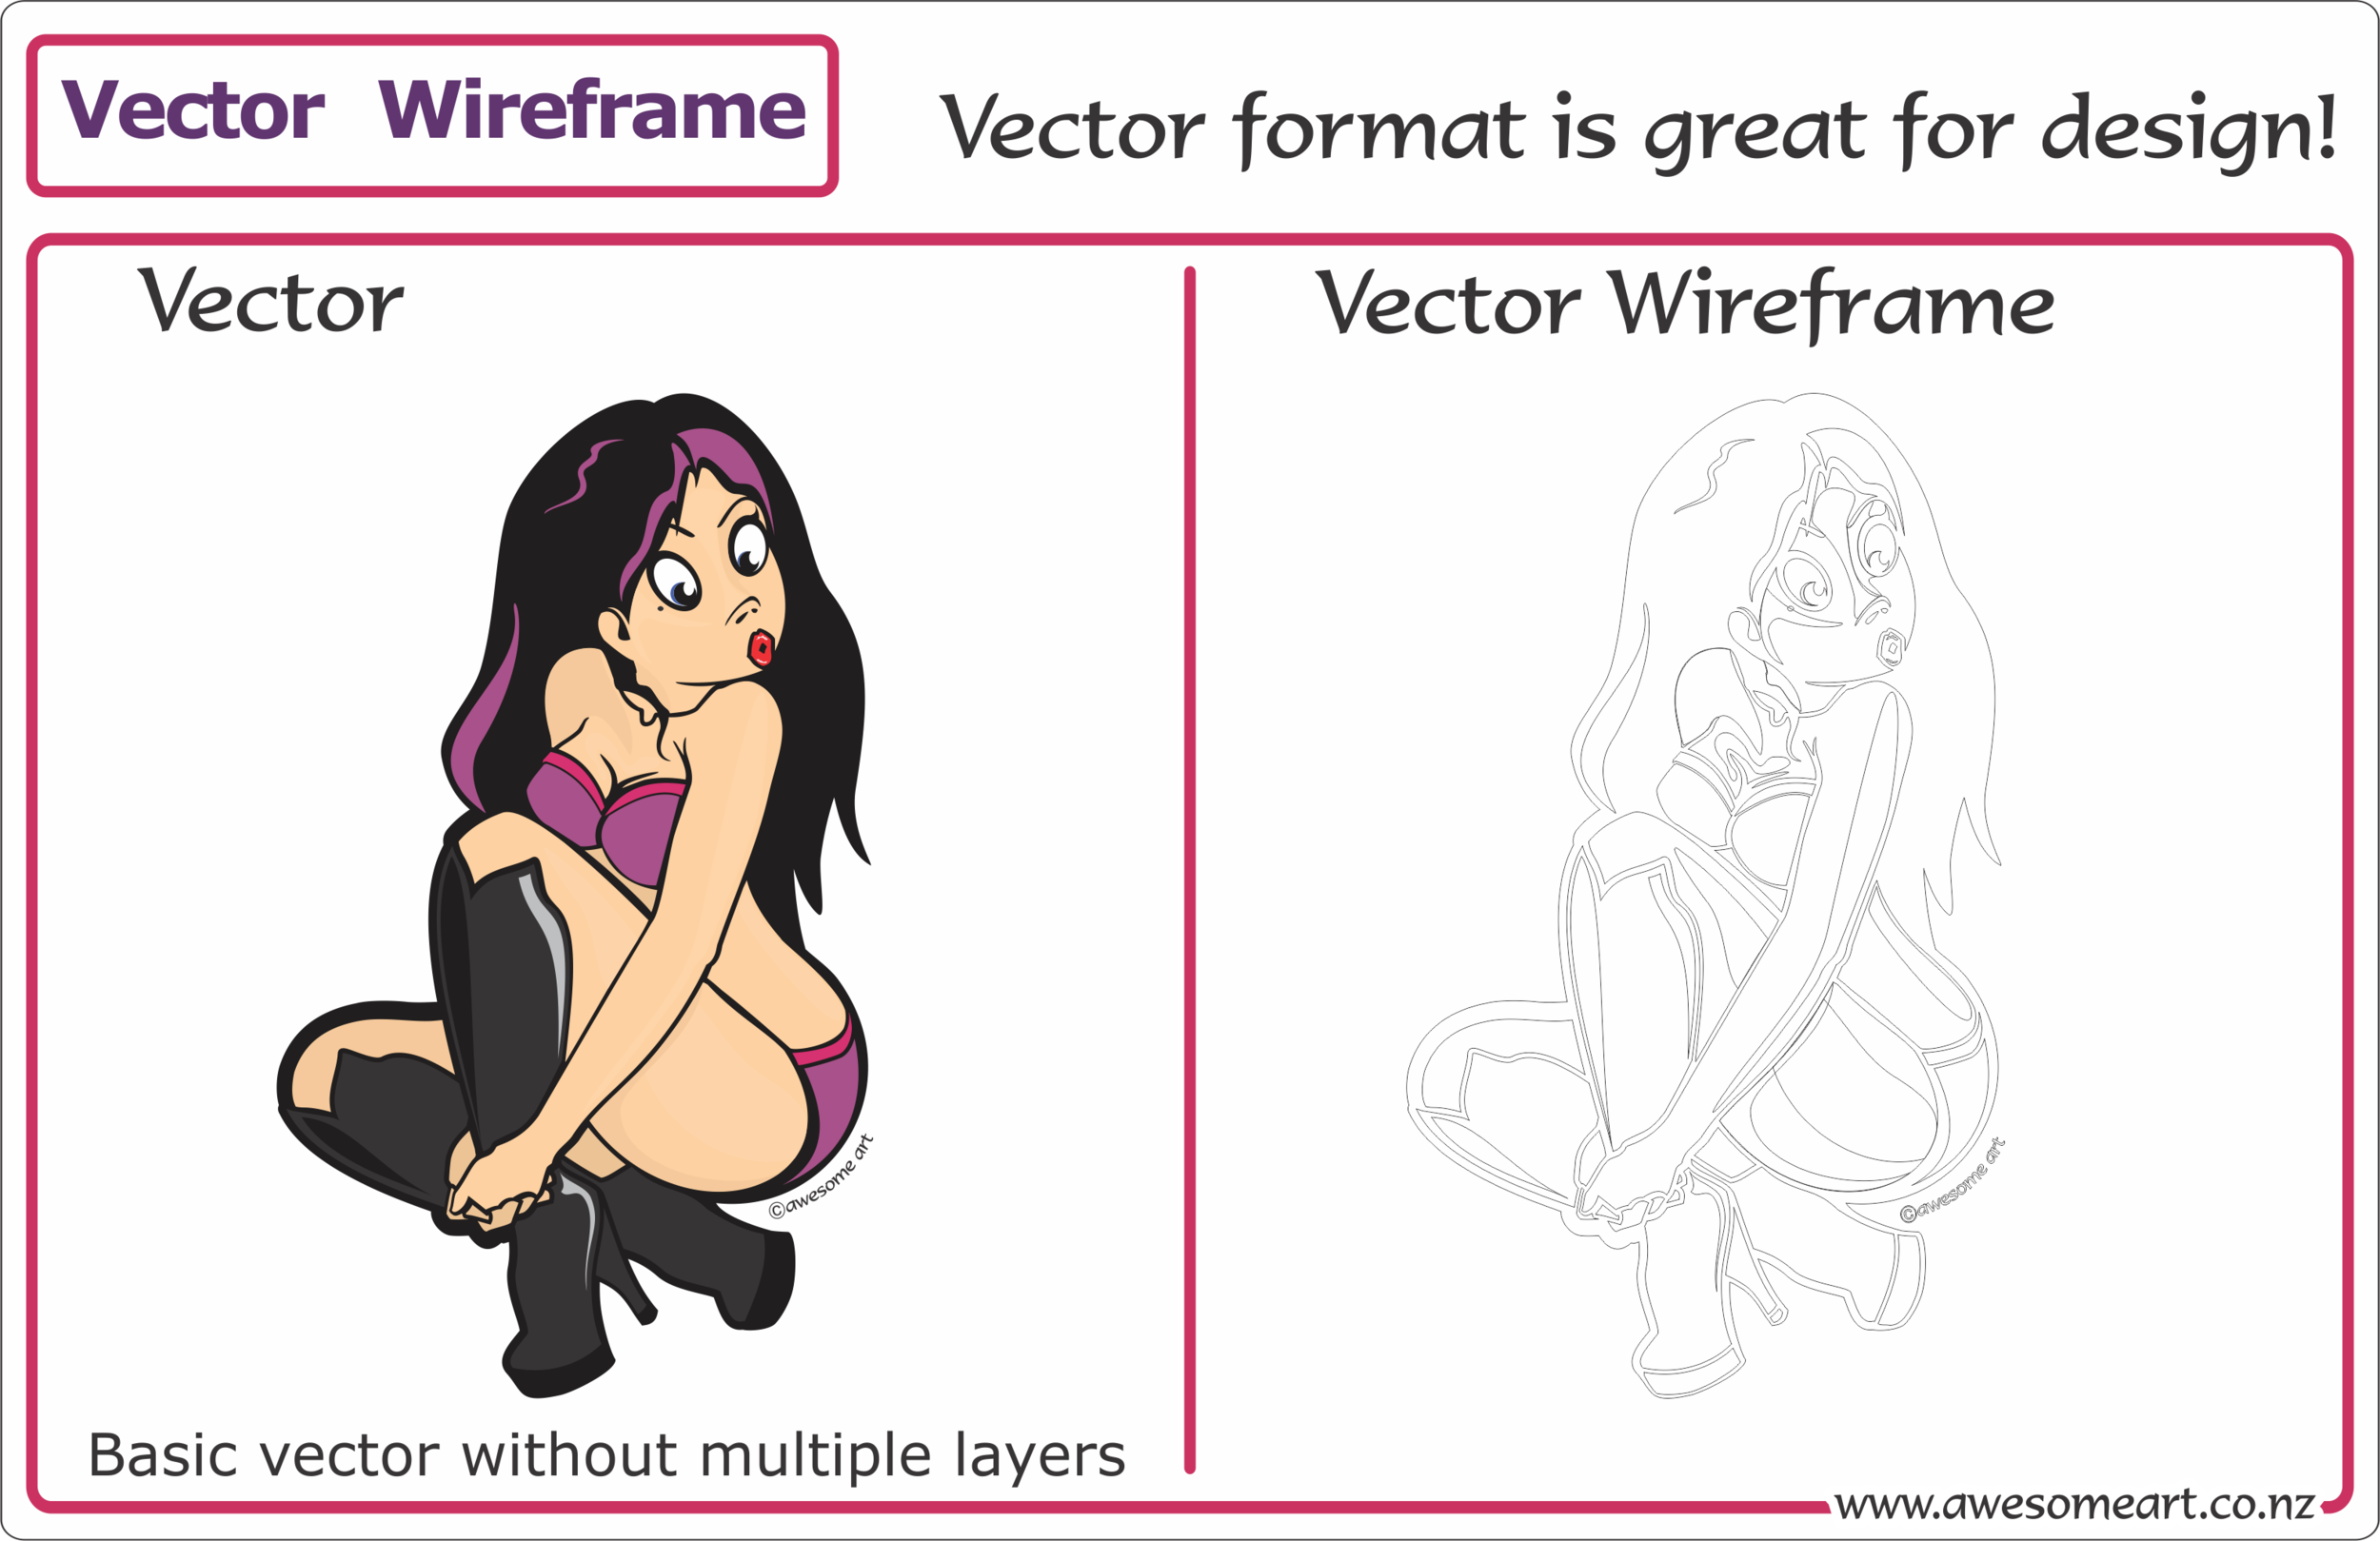 Vector Image Wireframe.png